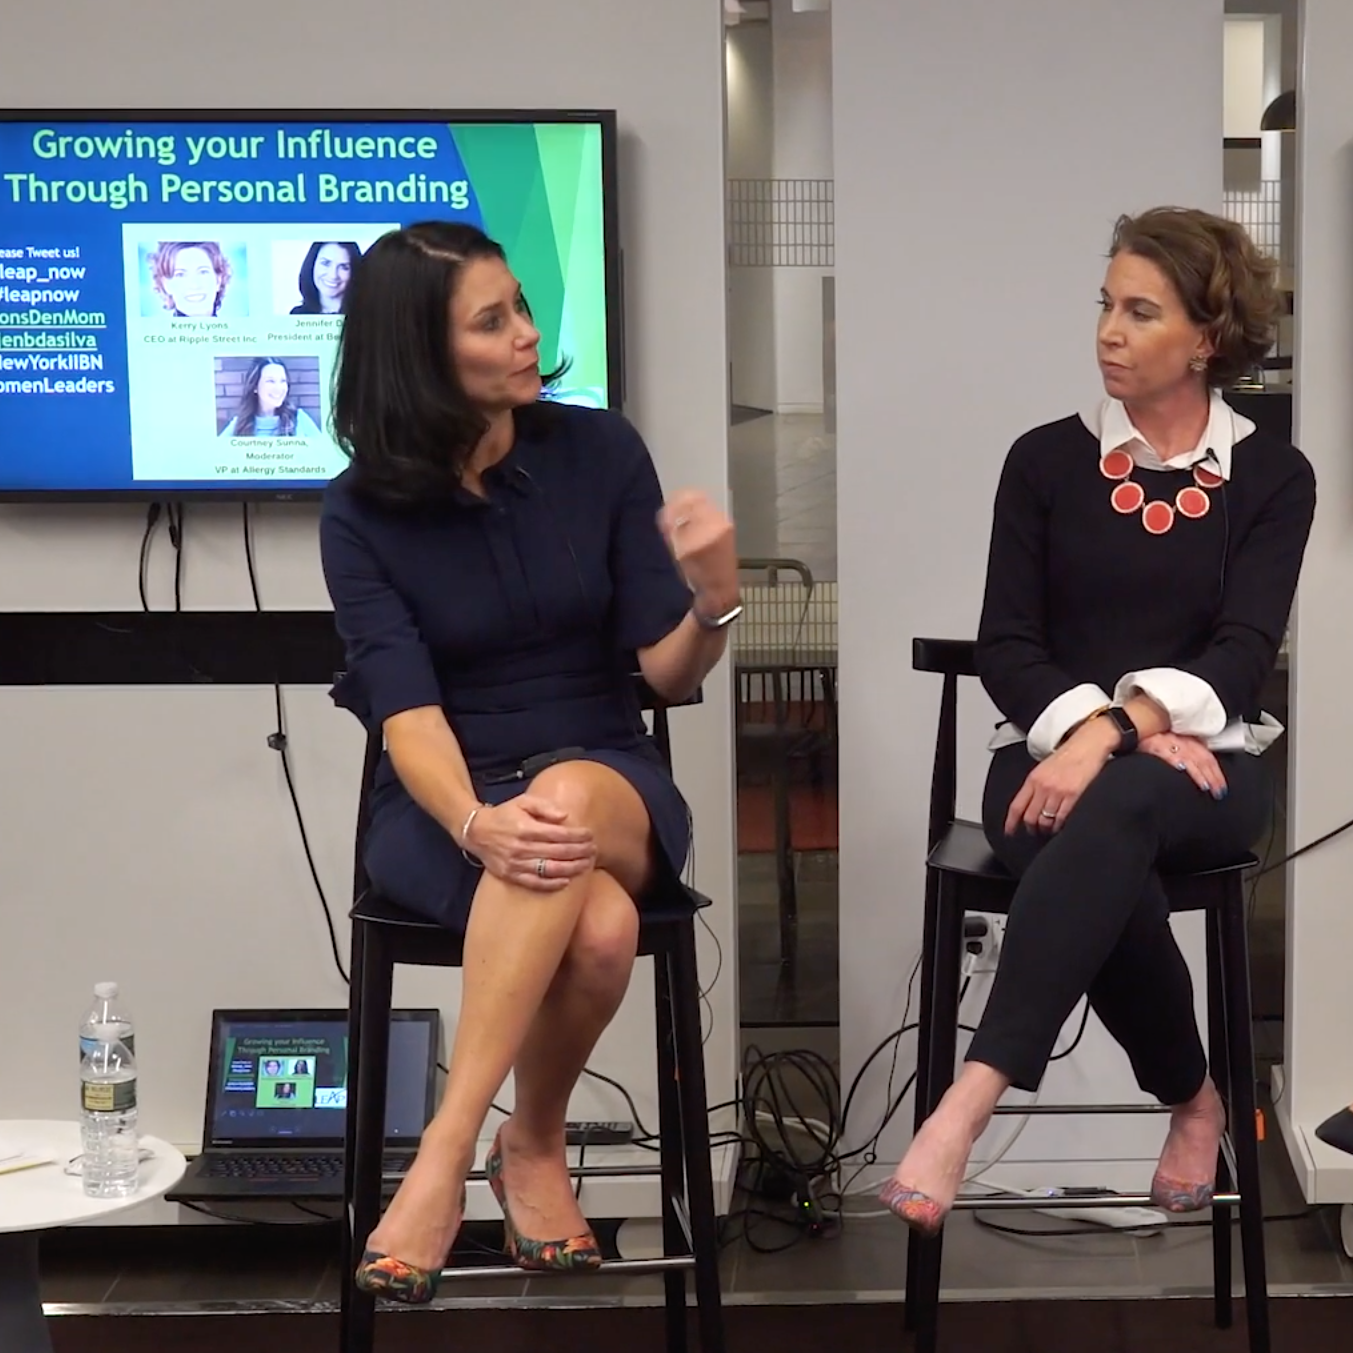 Growing Your Influence: The Power of Personal Branding - with Kerry Lyons and Jennifer DaSilva